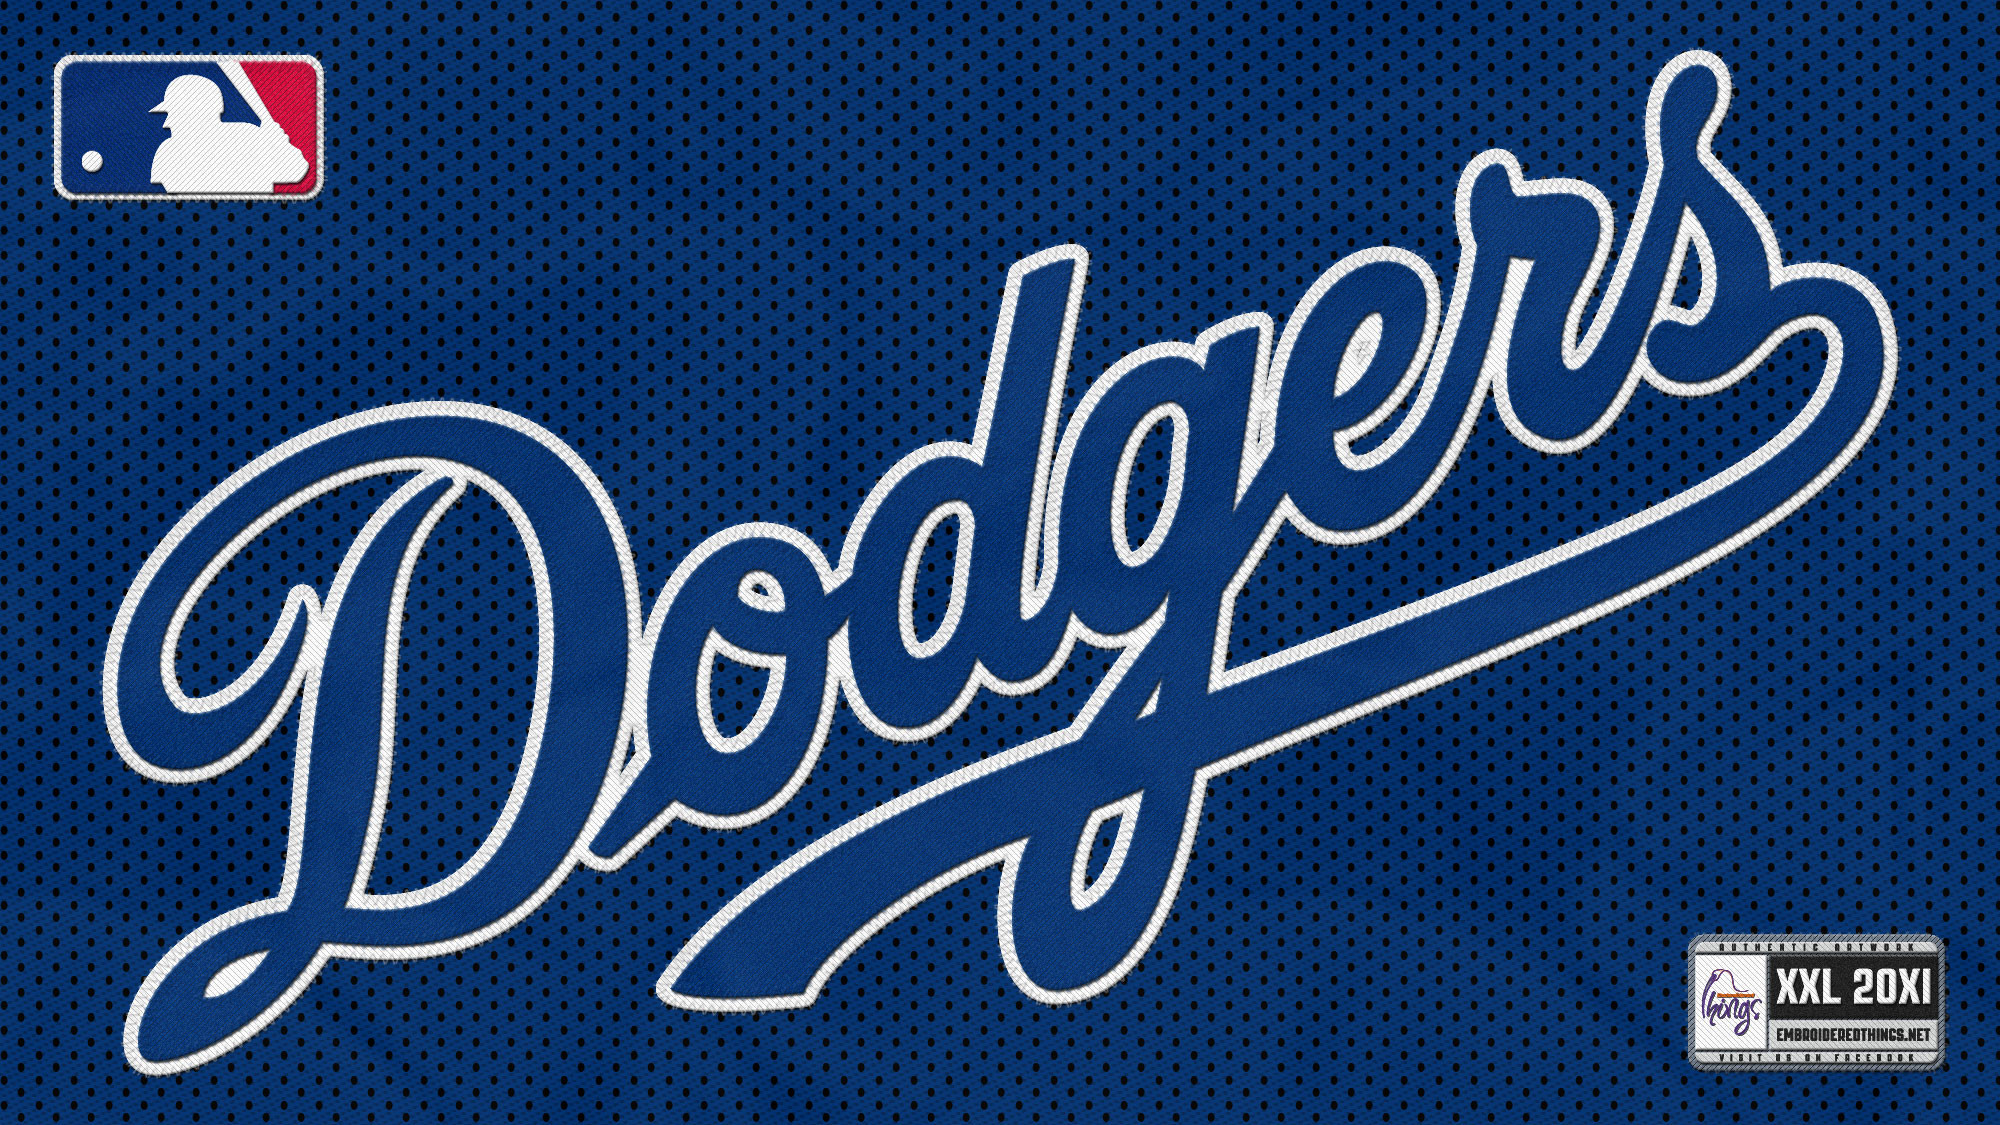 Los Angeles Dodgers wallpapers | Los Angeles Dodgers background – Page .